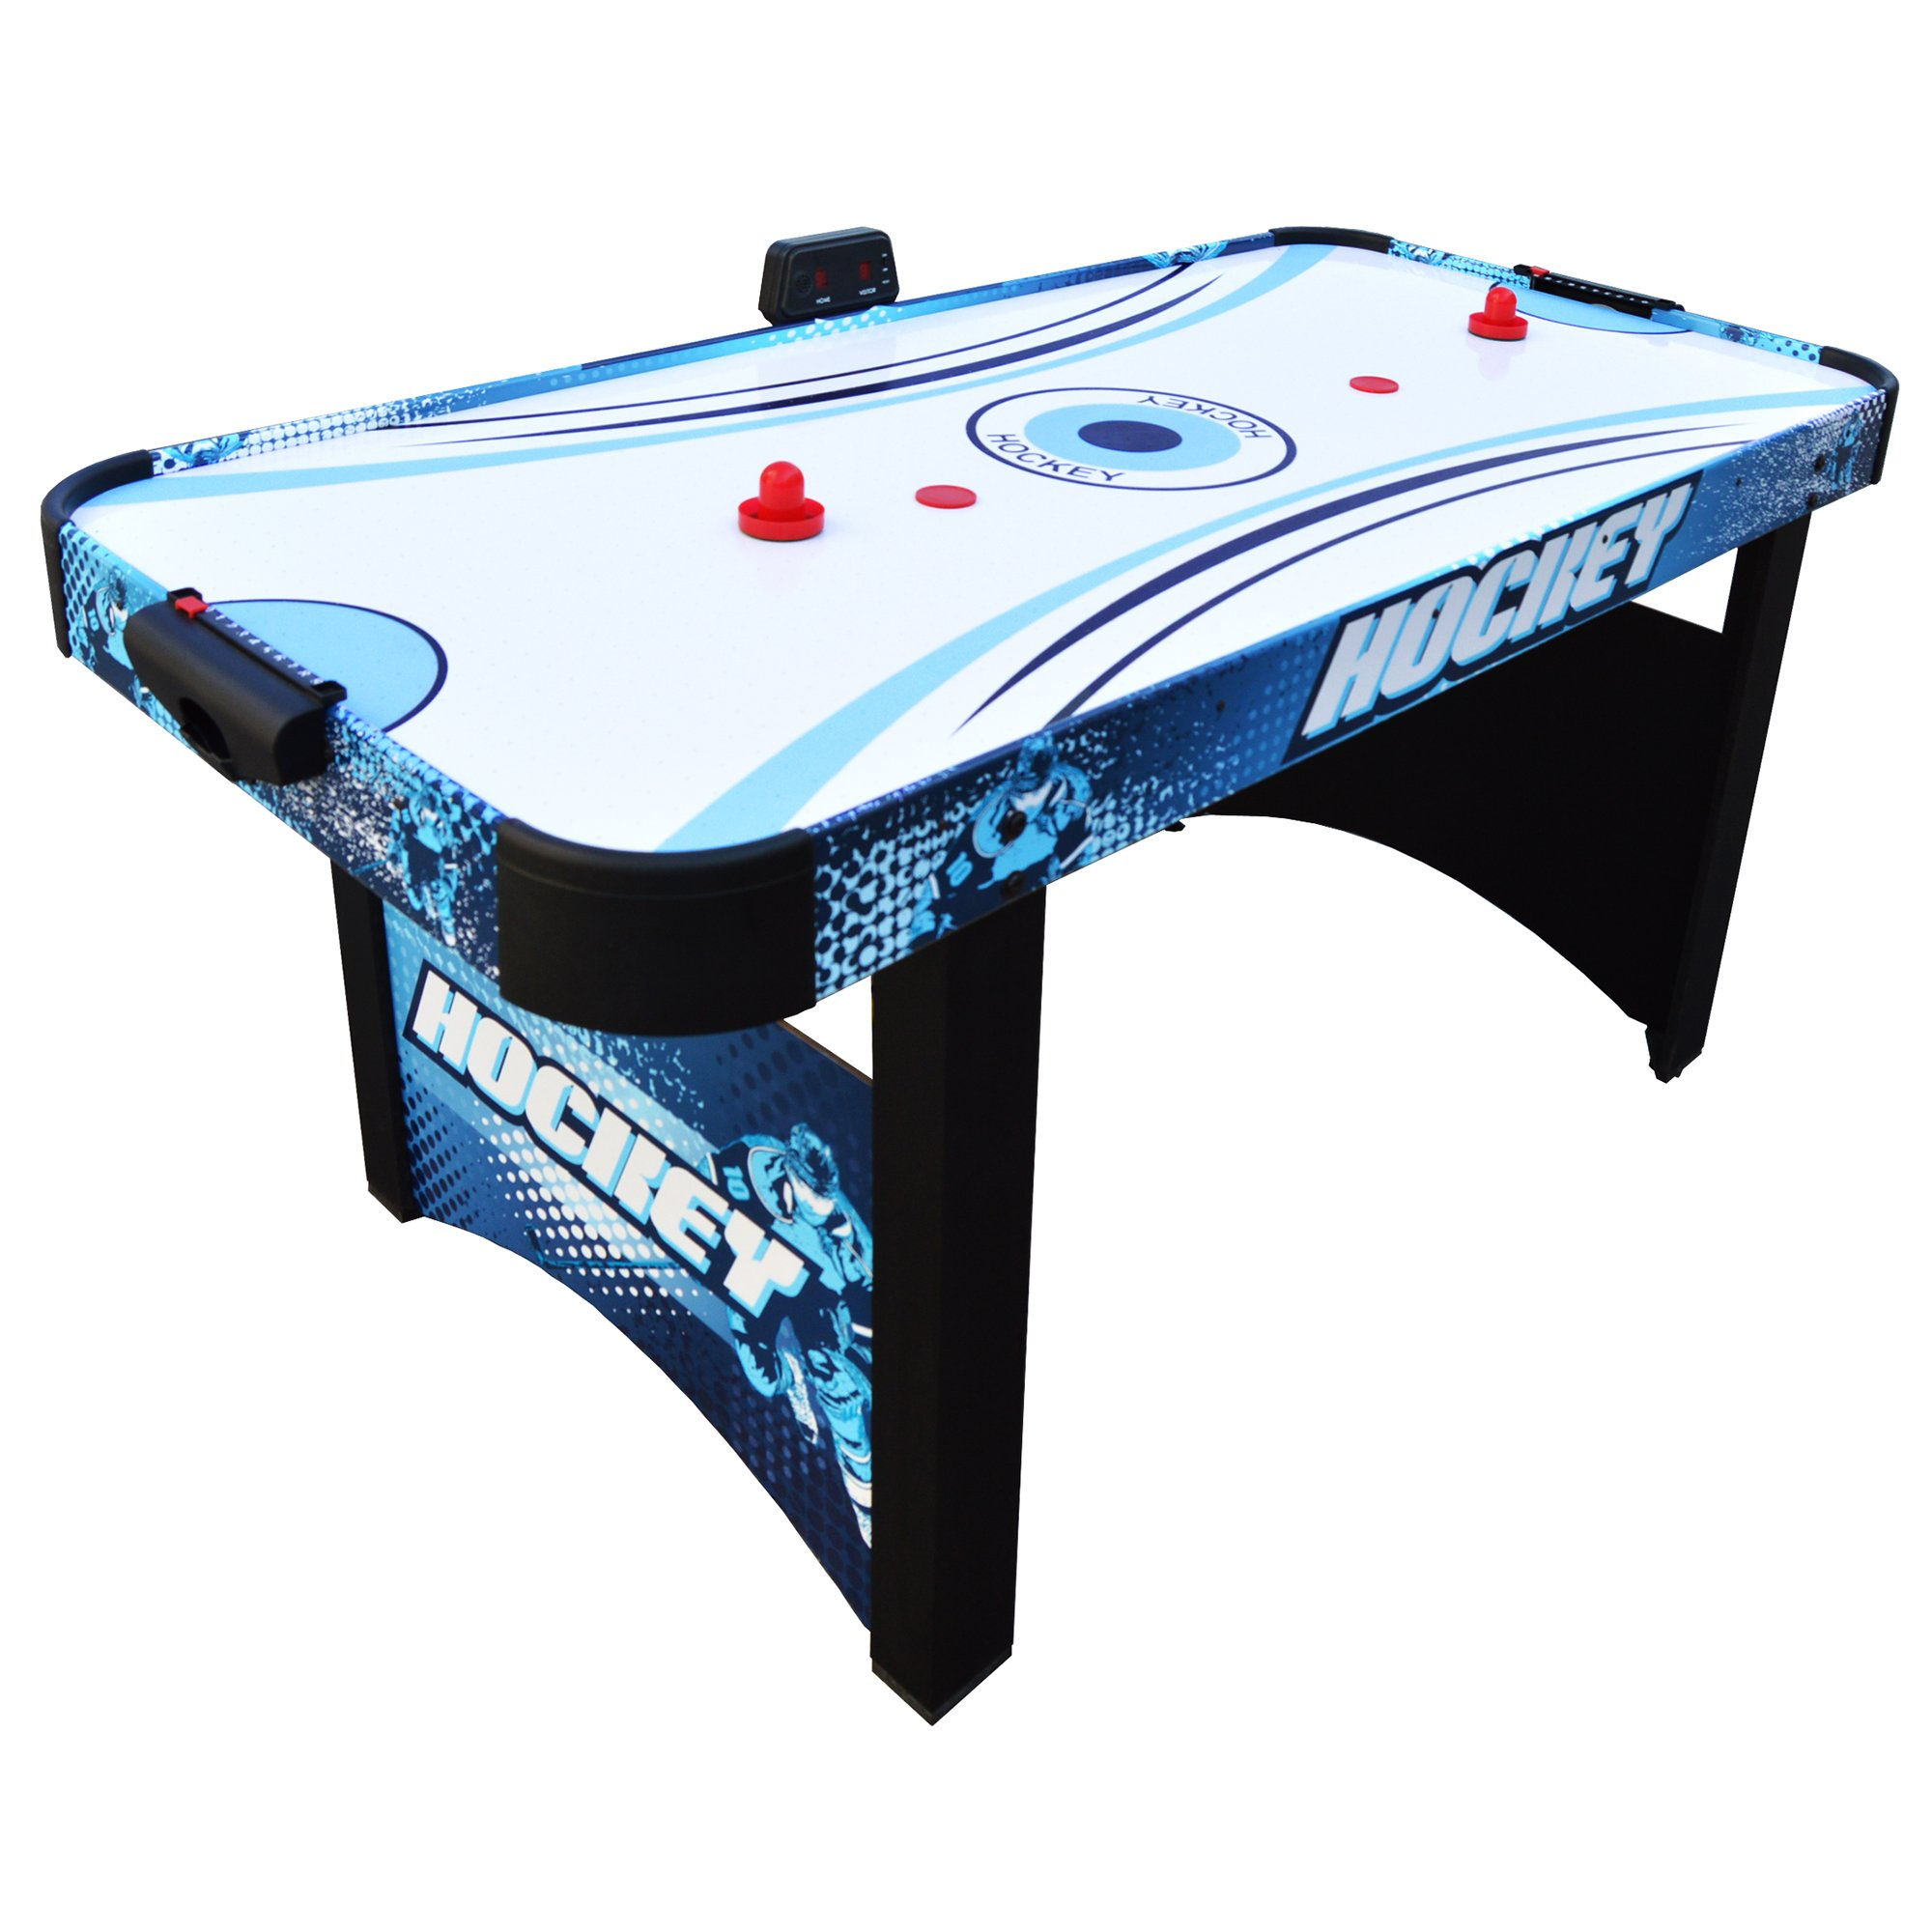 Hathaway Enforcer Air Hockey Table 5.5-ft for Kids with Electronic Scoring for Family Game Rooms – Blue/White